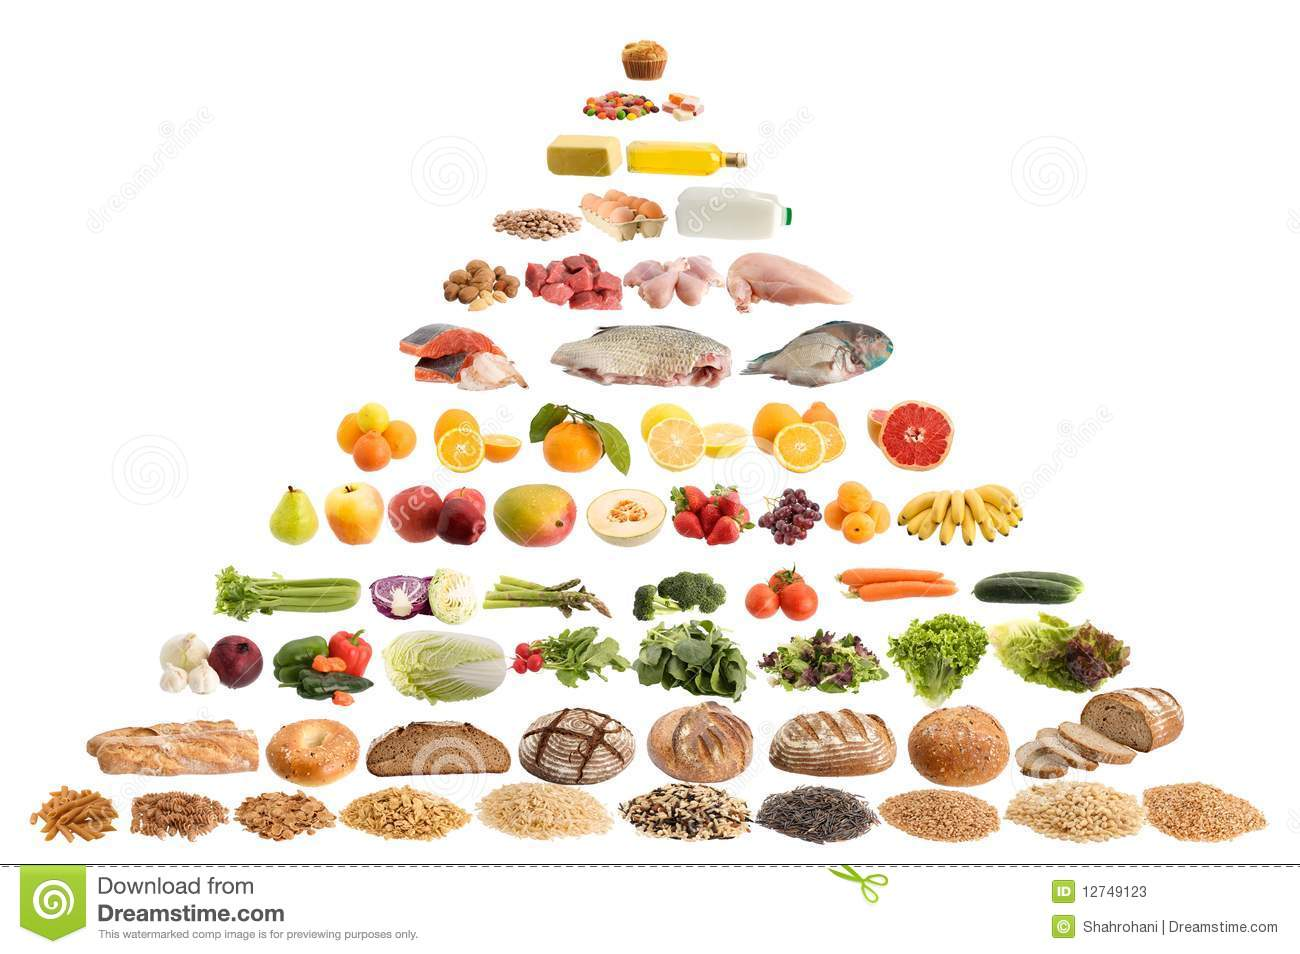 Food pyramid guide stock image. Image of object, meat ...